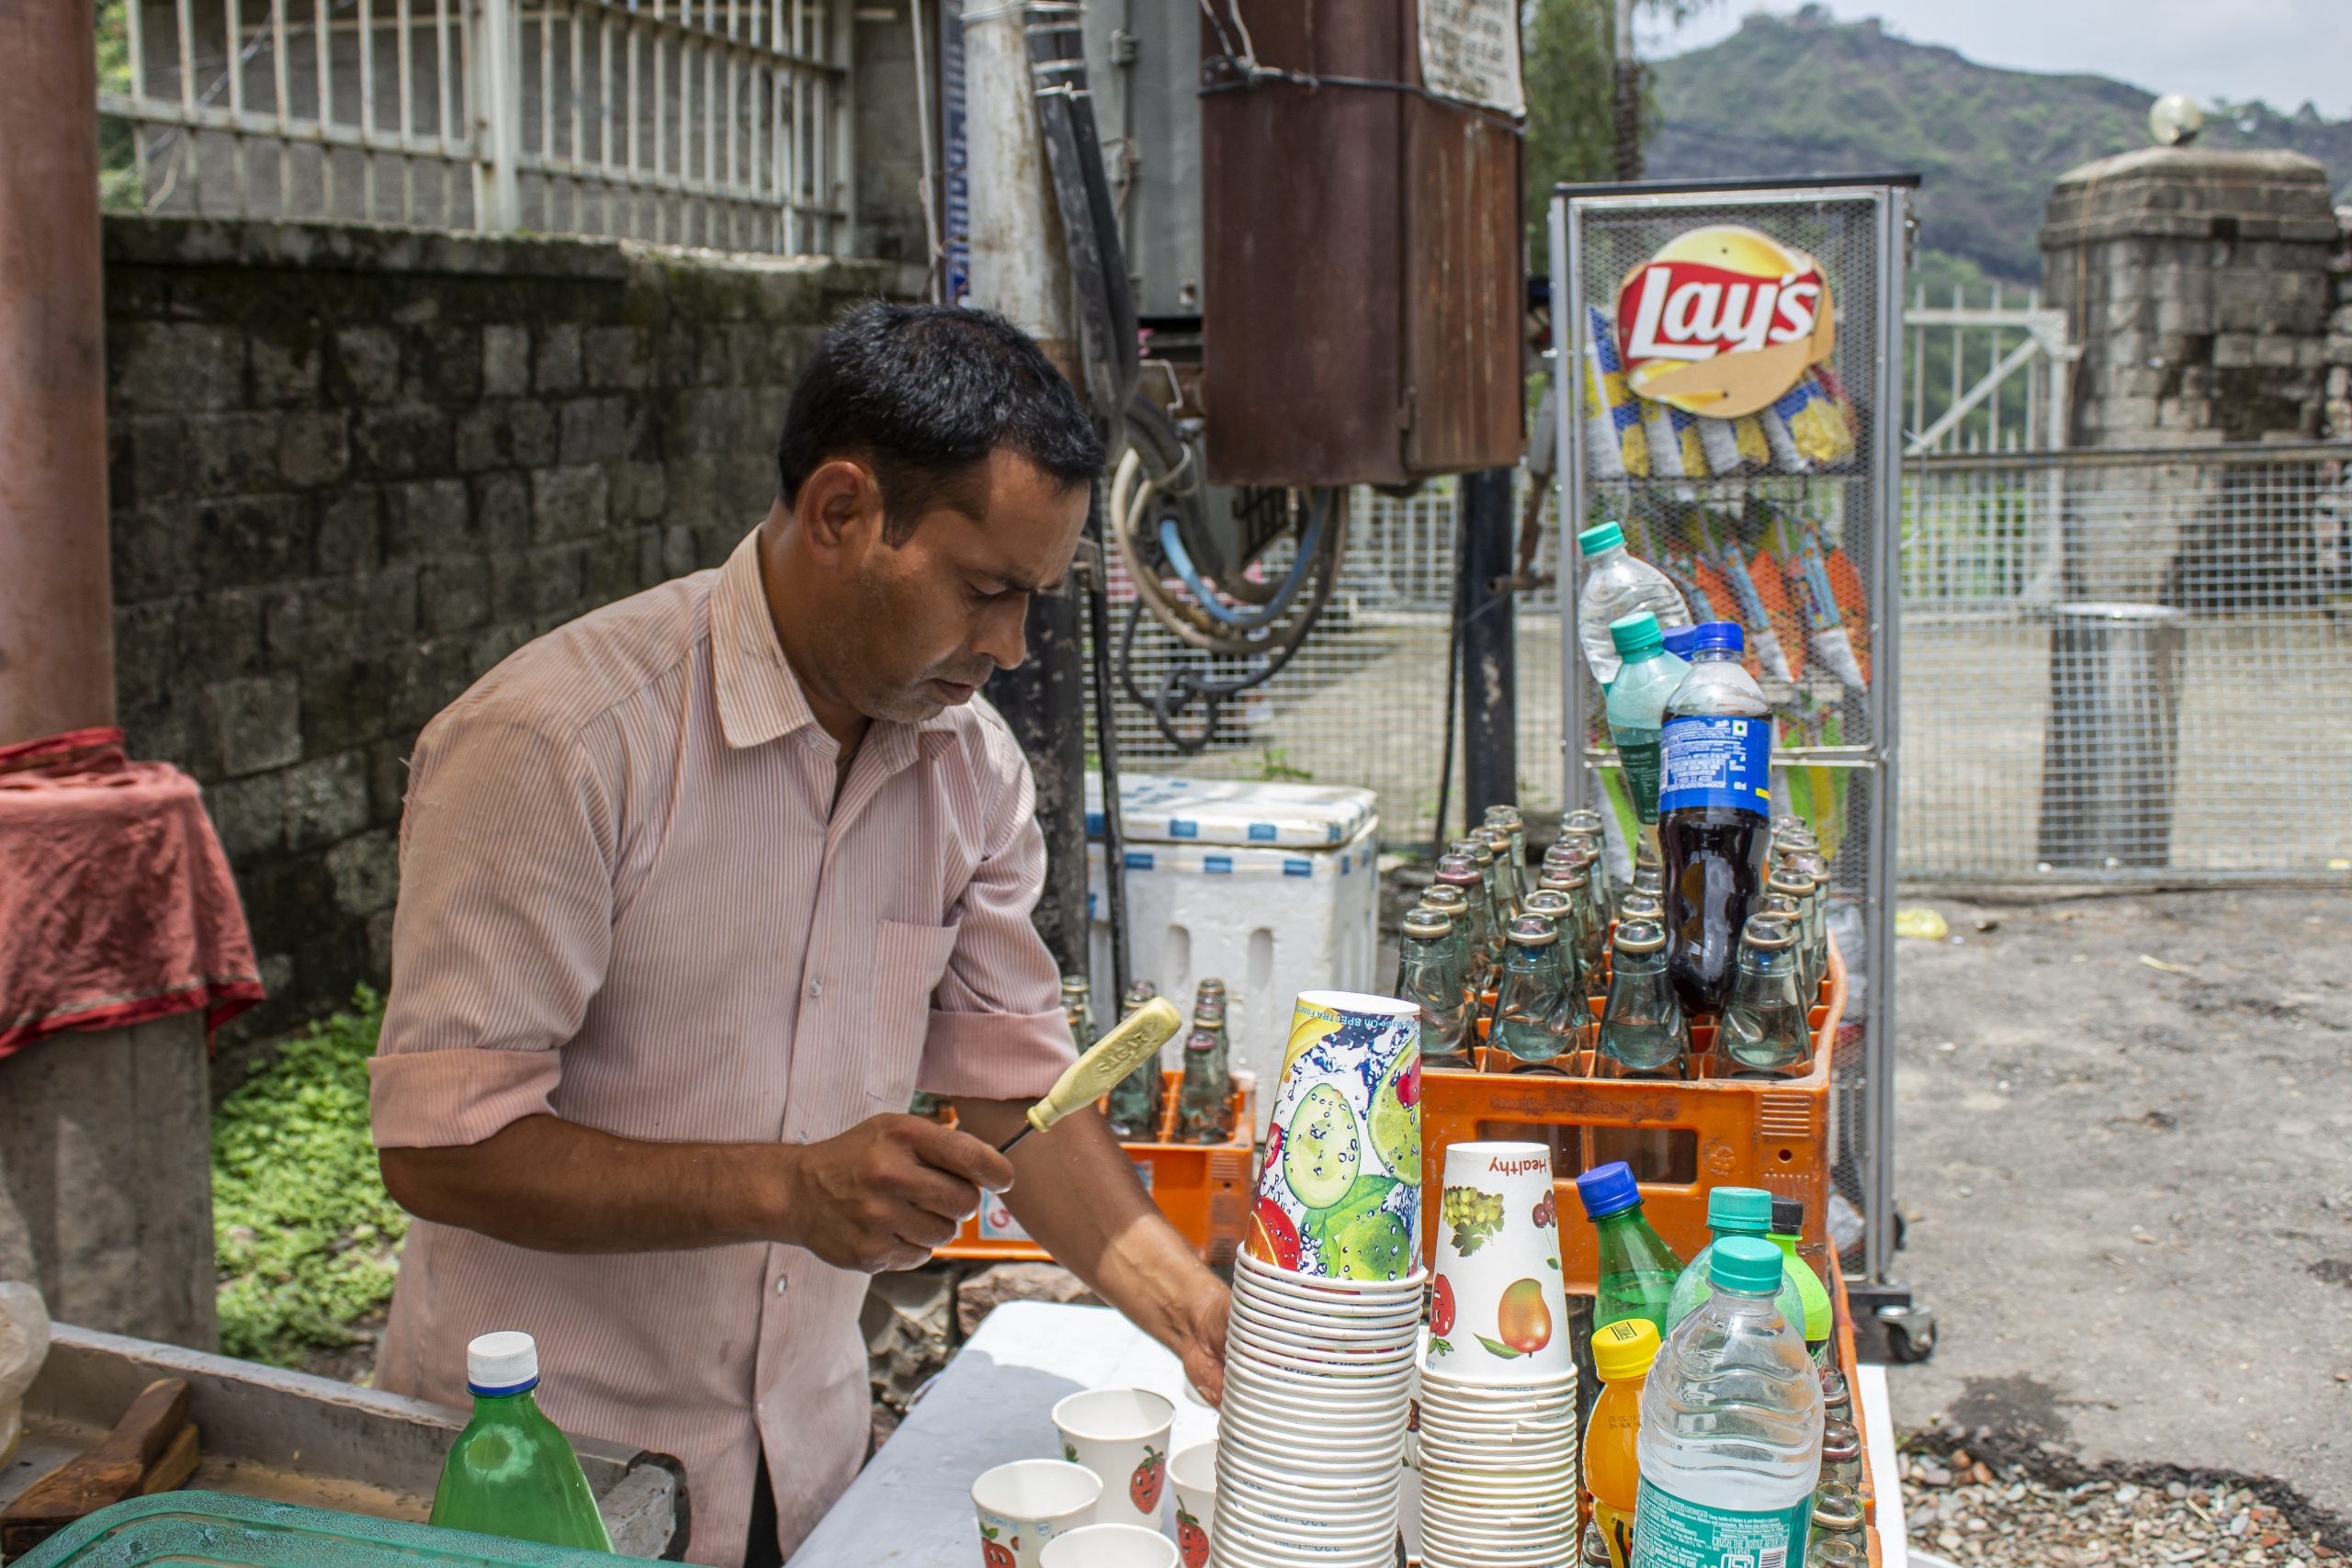 Street vendor selling beverage